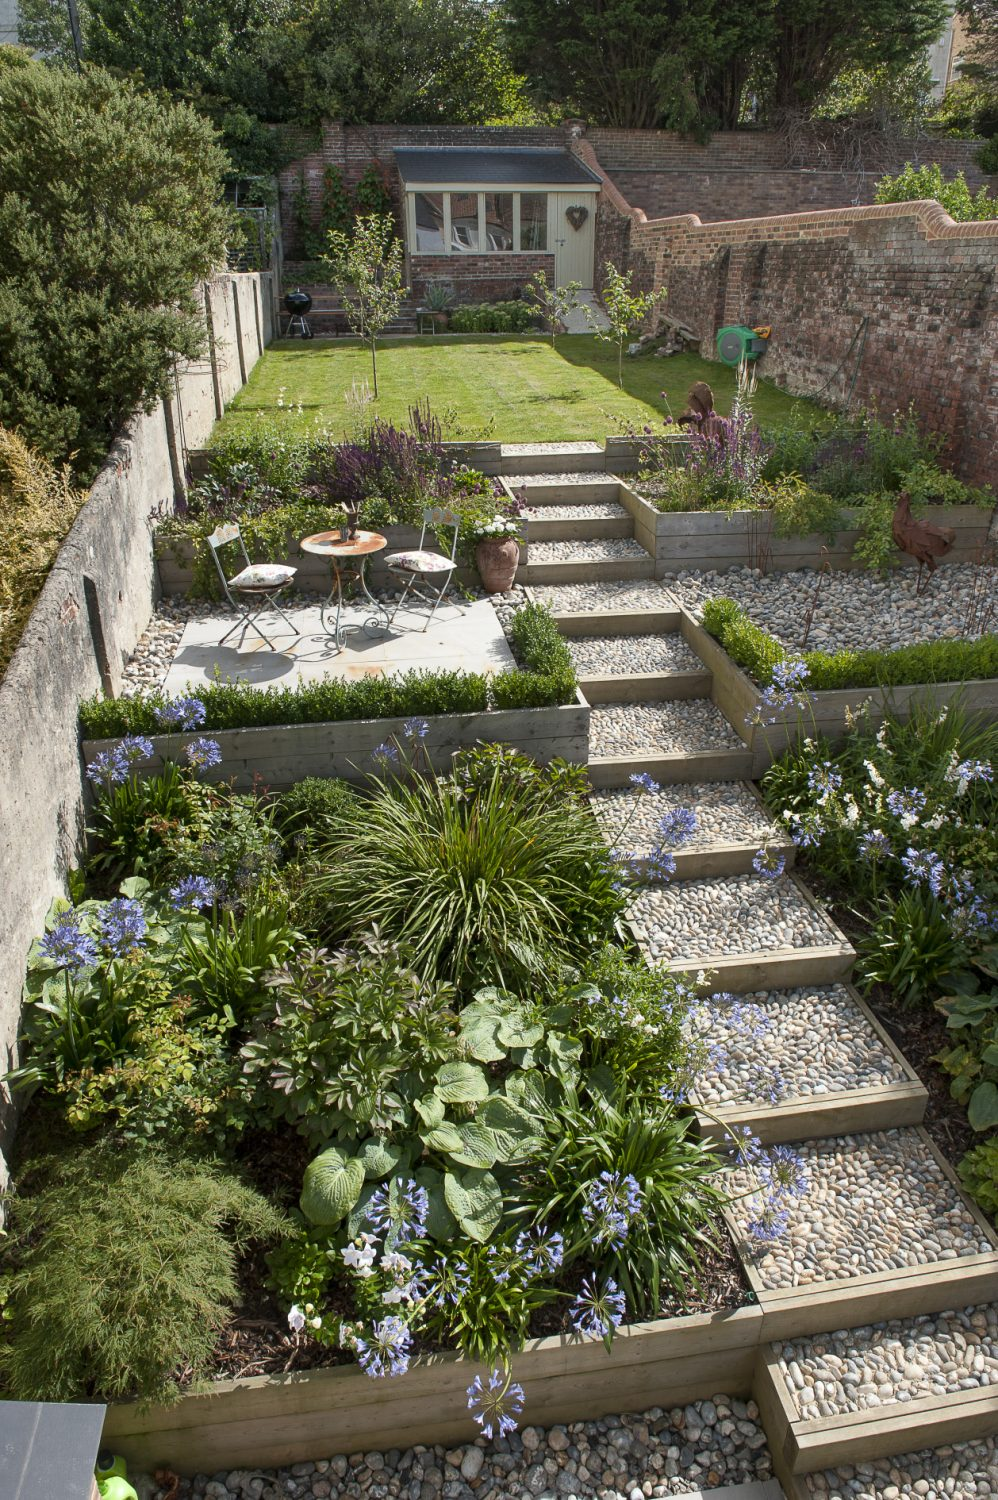 Rounded pebbles have been cemented into place on the wide steps that ascend to the back garden